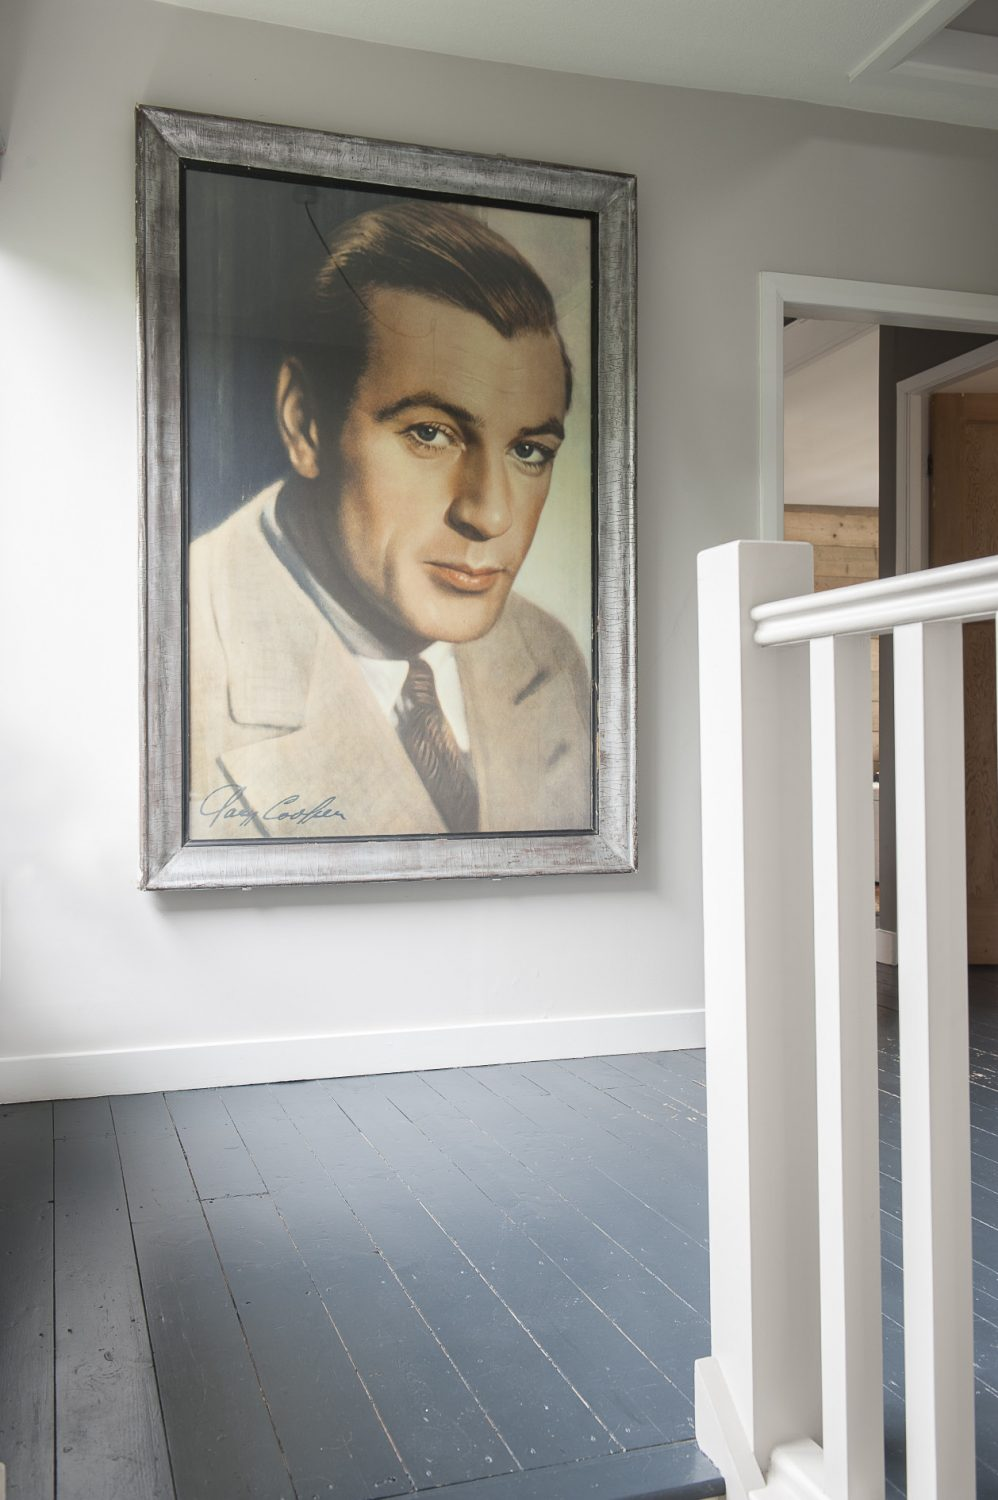 The four-foot-high framed poster of Gary Cooper is from McCully & Crane